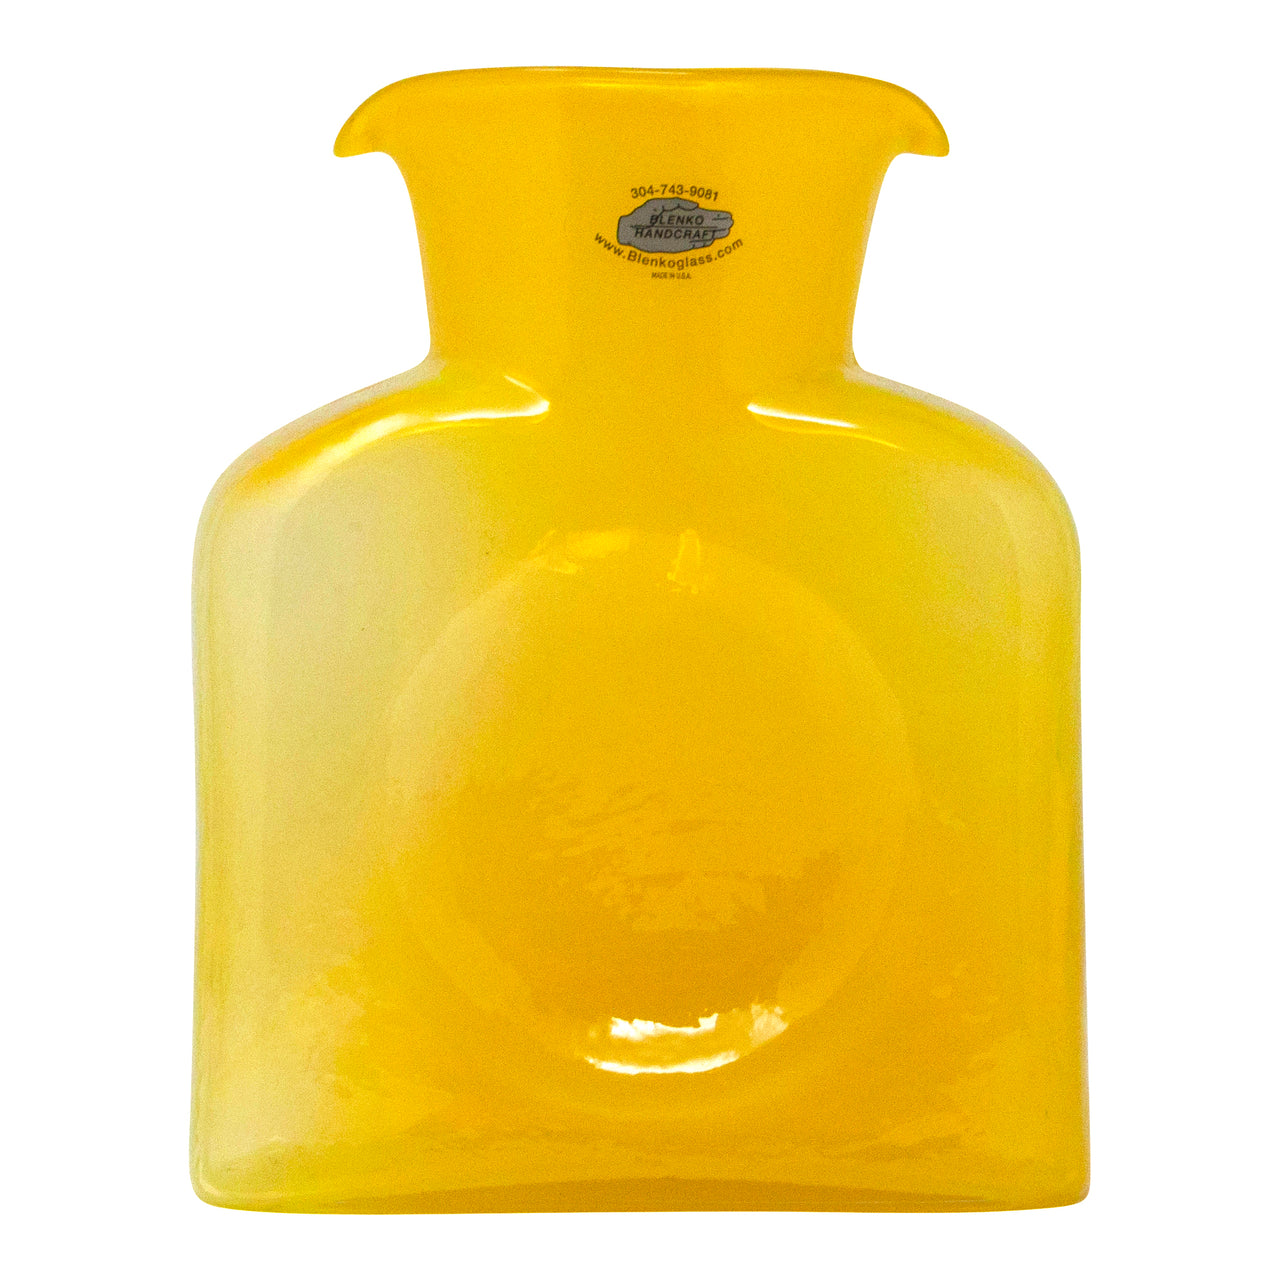 Vintage Blenko Lemon Yellow Water Pitcher (Signed) | The Hour Shop